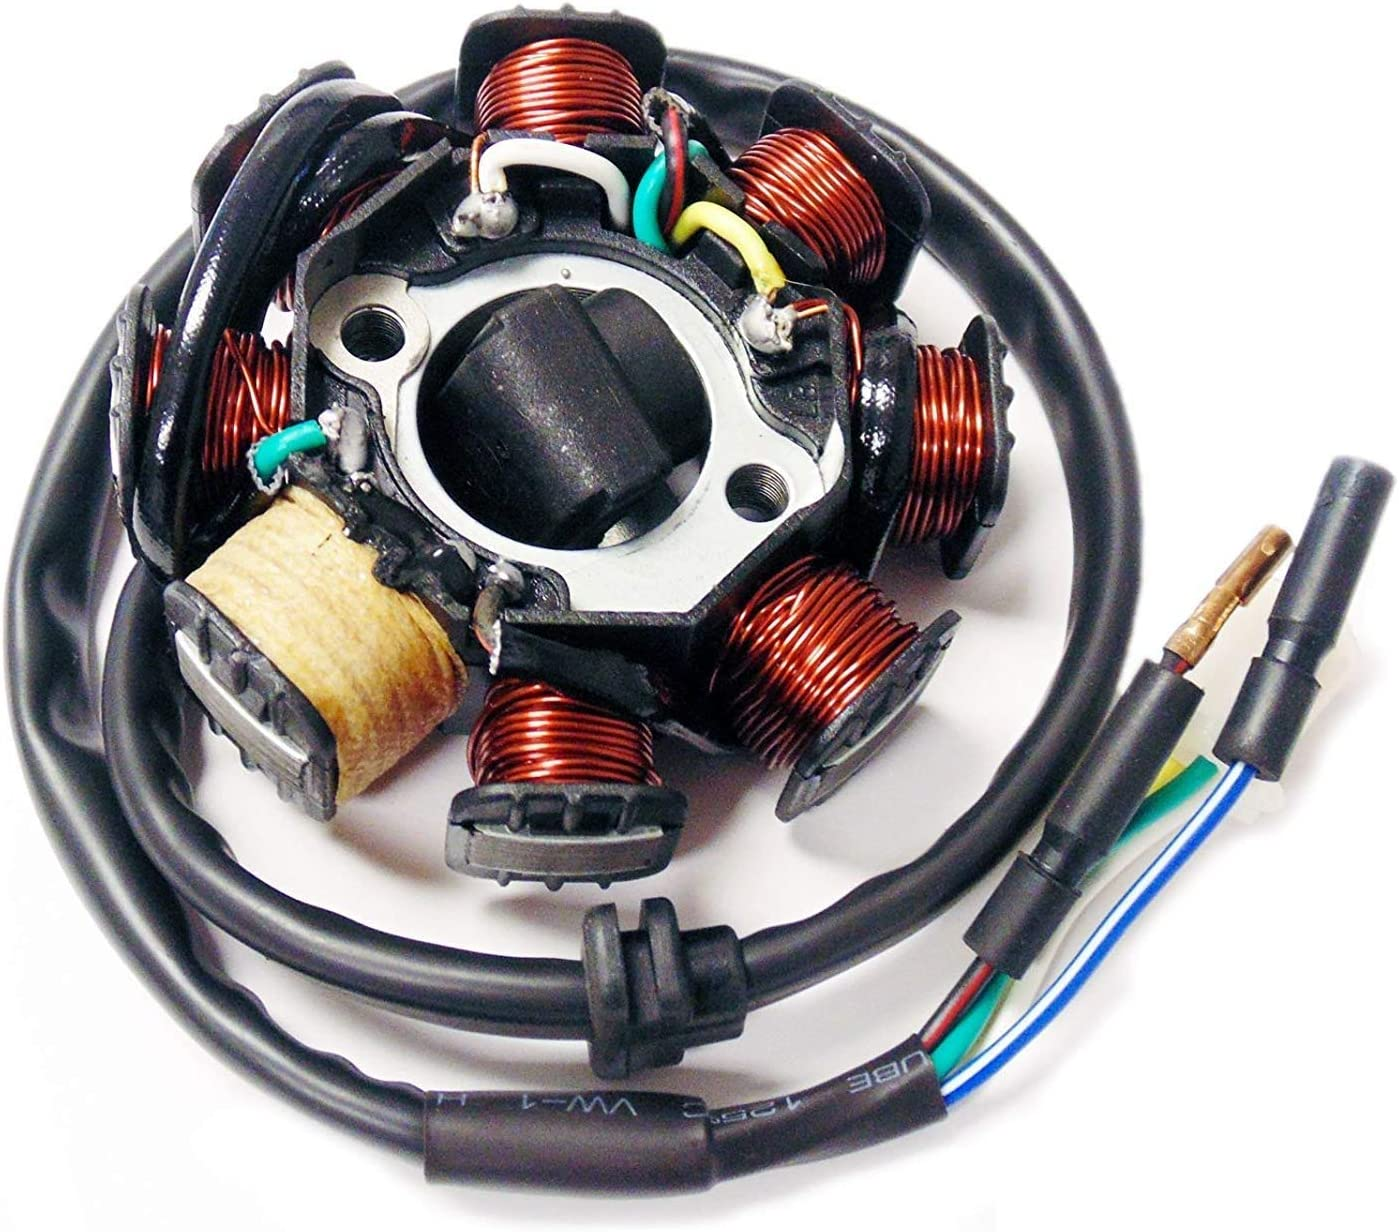 Magneto Stator Ignition Generator 12 Poles Coils for 125cc//150cc GY6 Based Engines